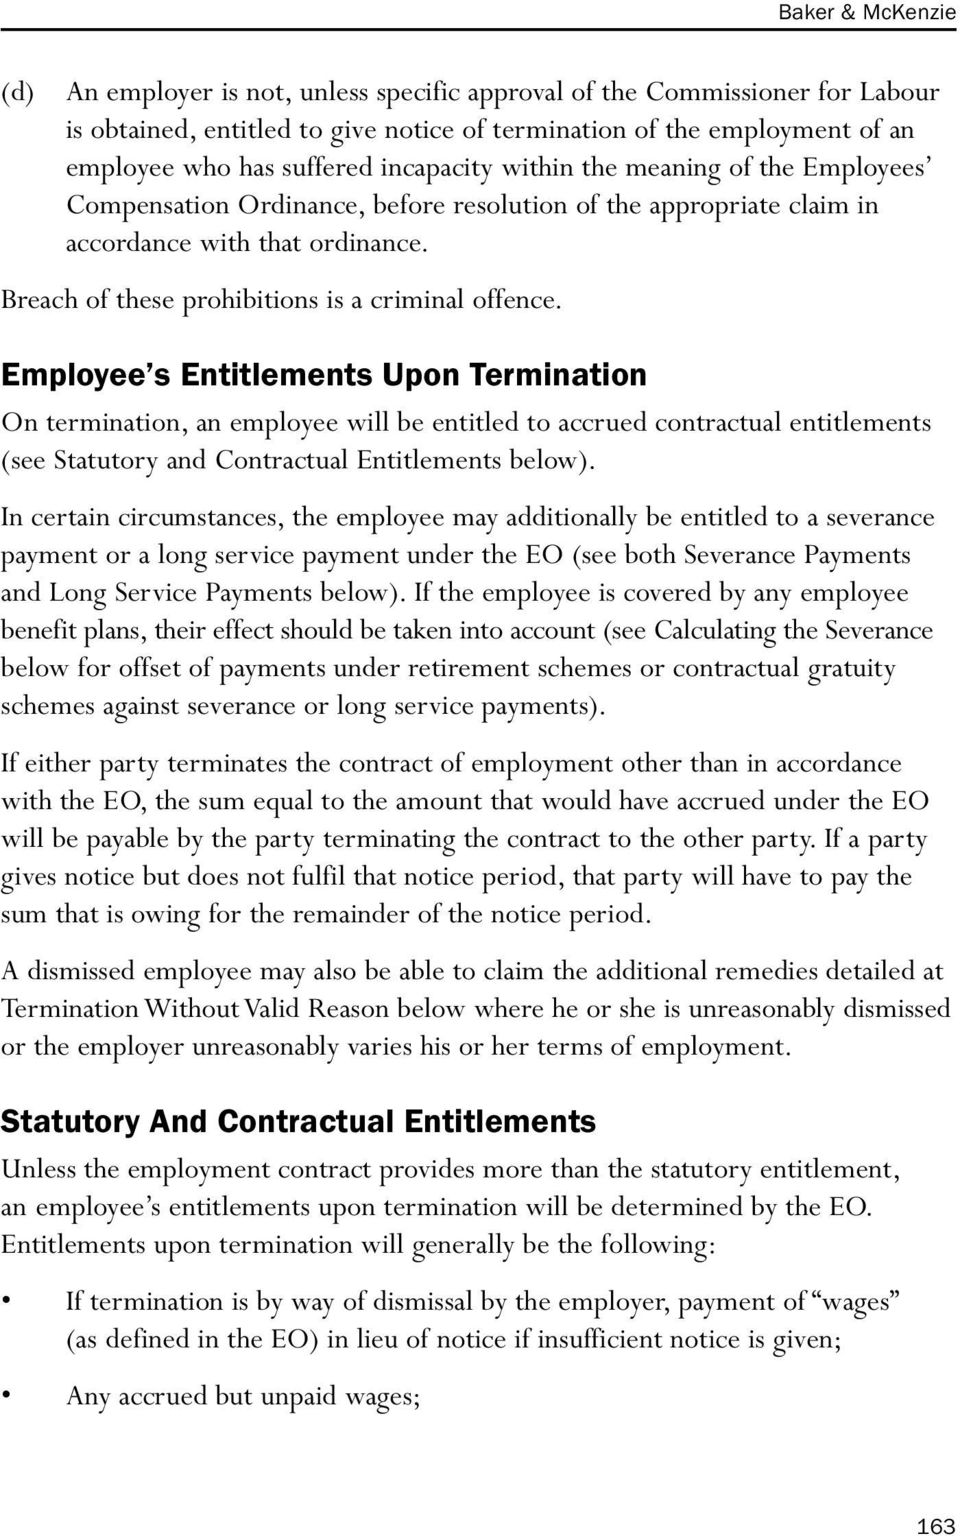 Employee s Entitlements Upon Termination On termination, an employee will be entitled to accrued contractual entitlements (see Statutory and Contractual Entitlements below).